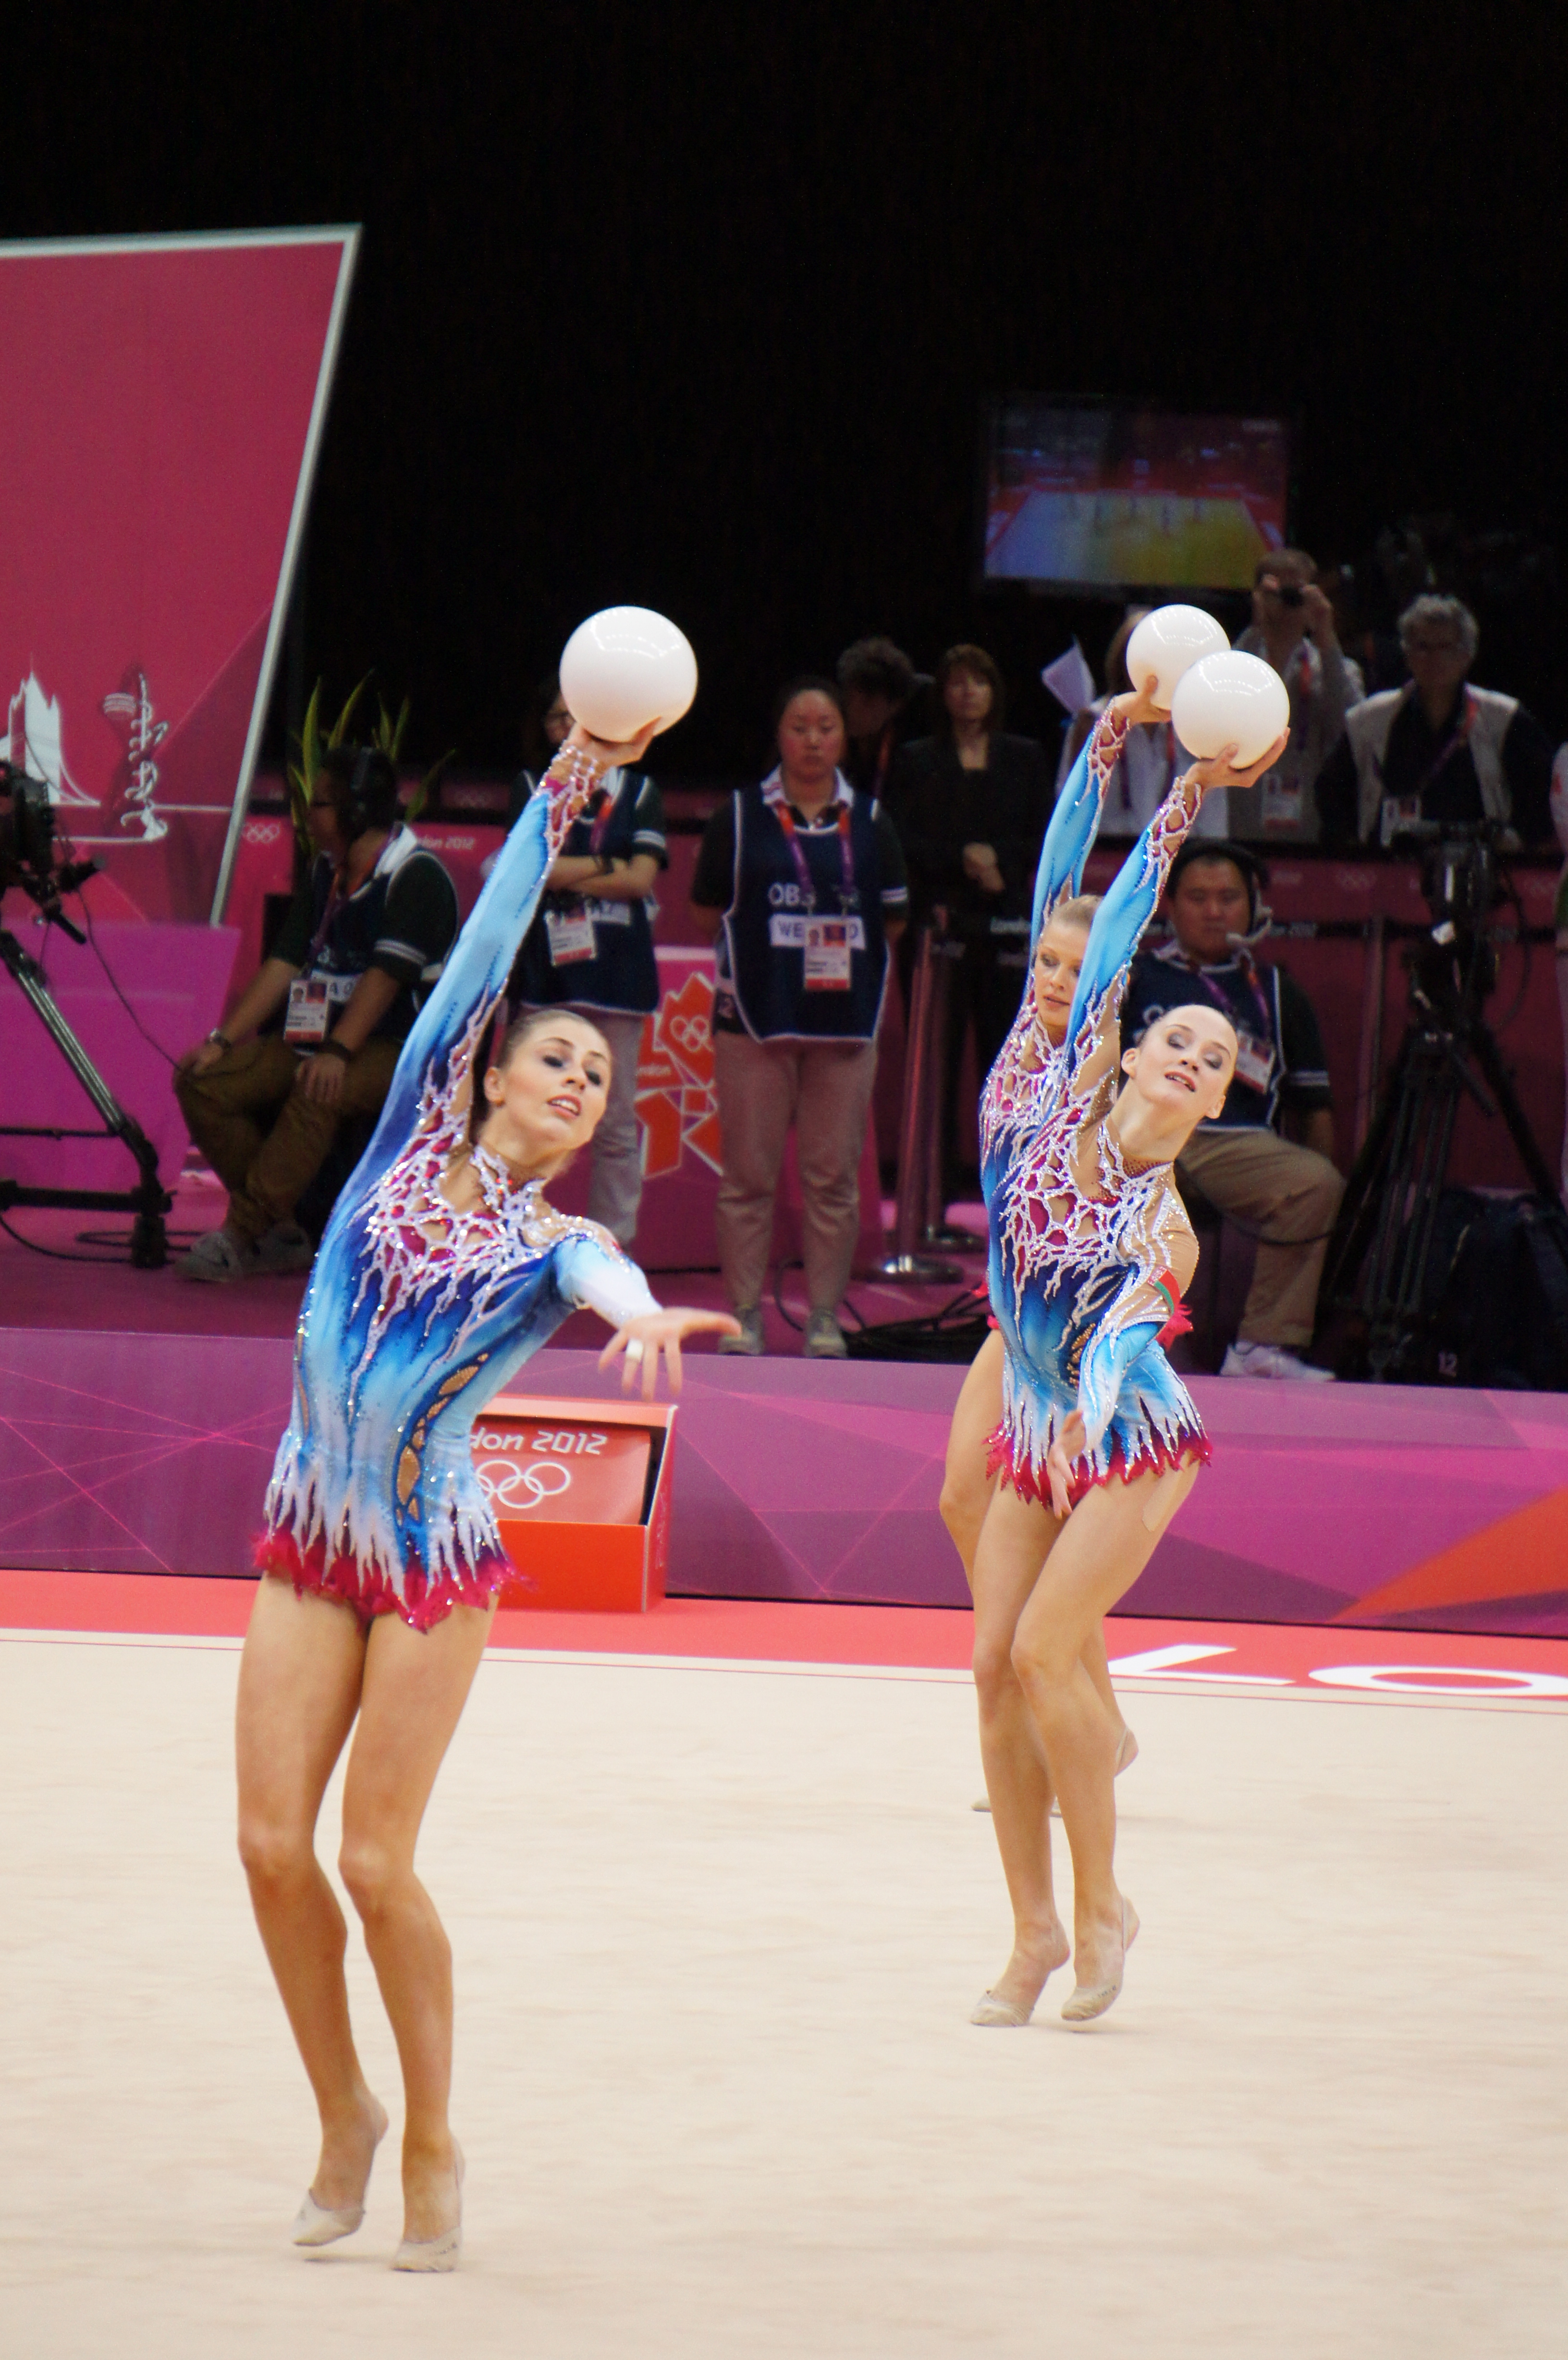 File:London 2012 Rhythmic Gymnastics - Belarus balls.jpg ...